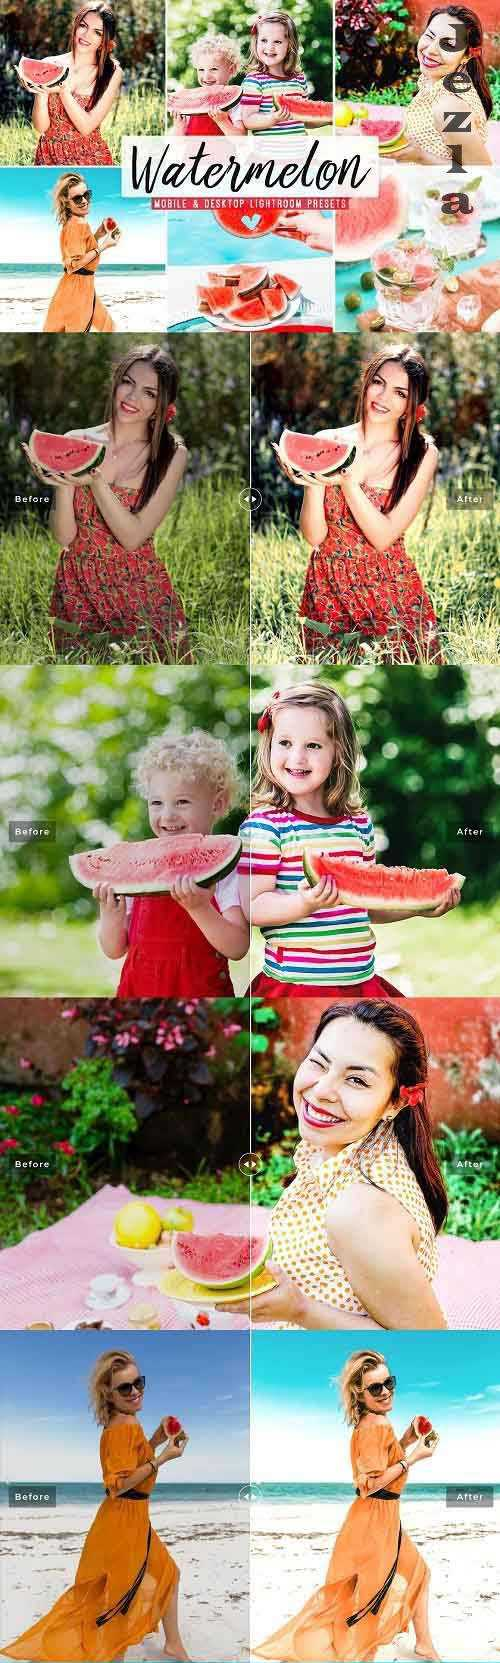 Watermelon Pro Lightroom Presets – 5426930 – Mobile & Desktop